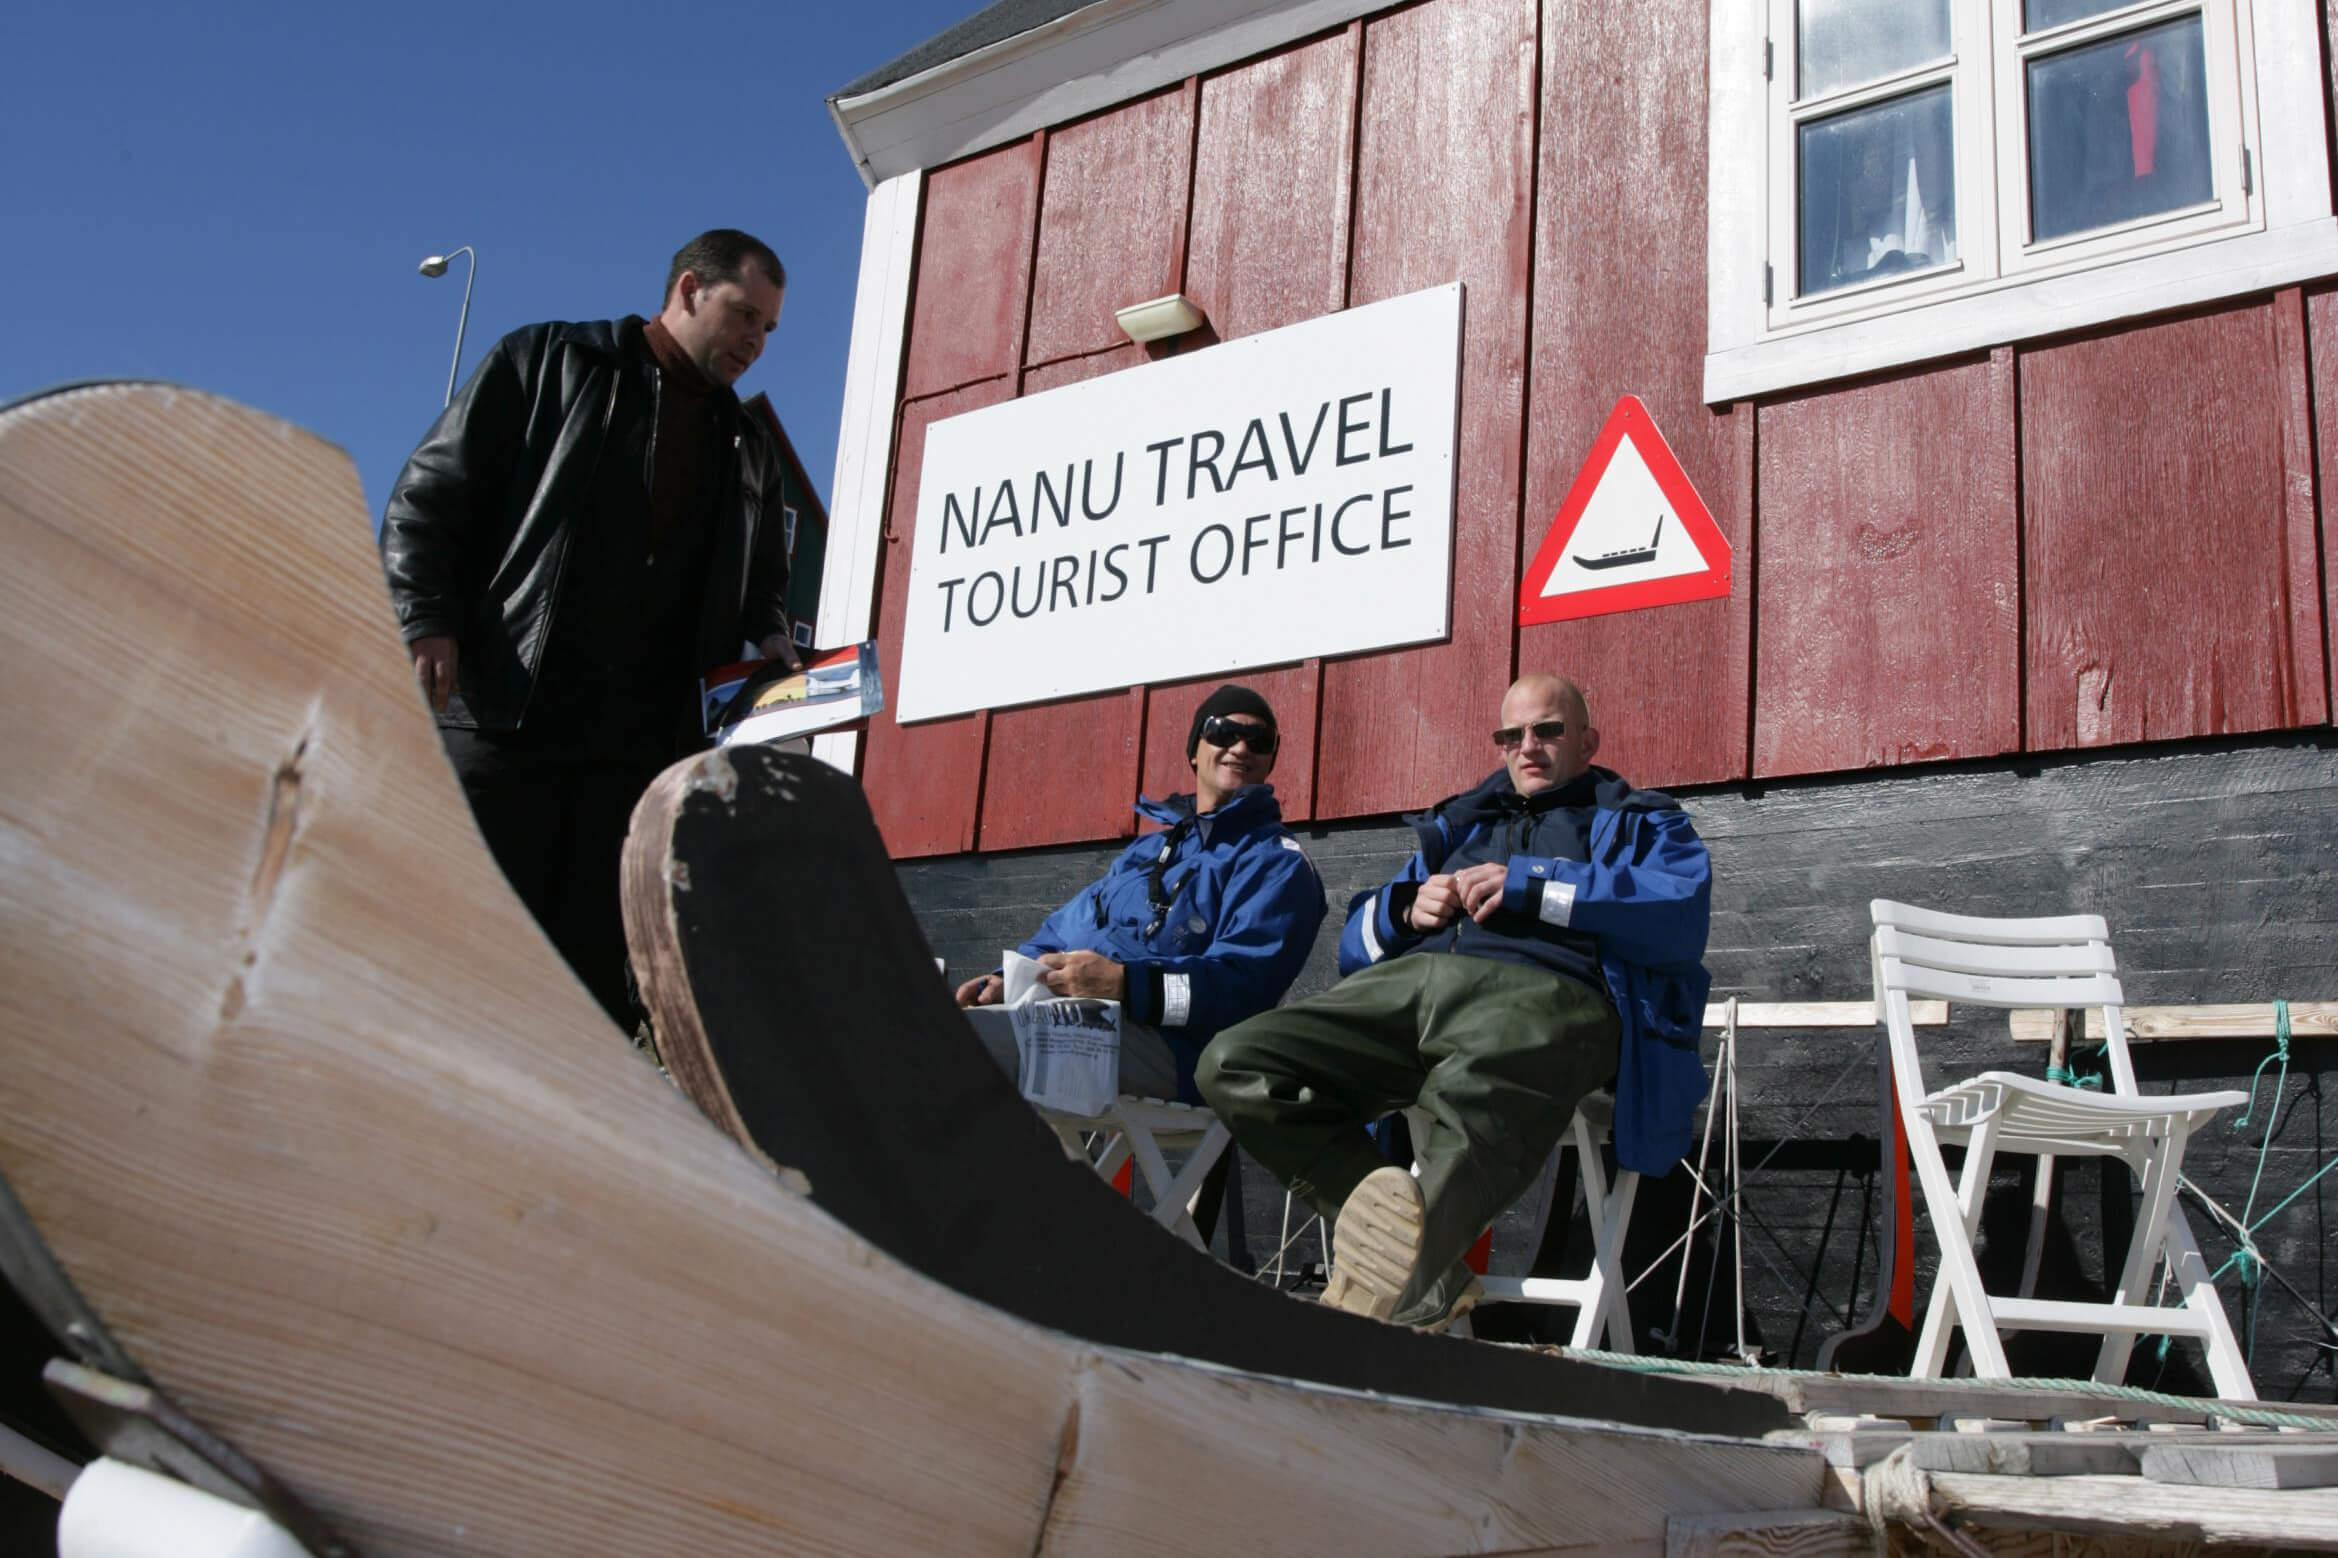 Nanu Travel 01